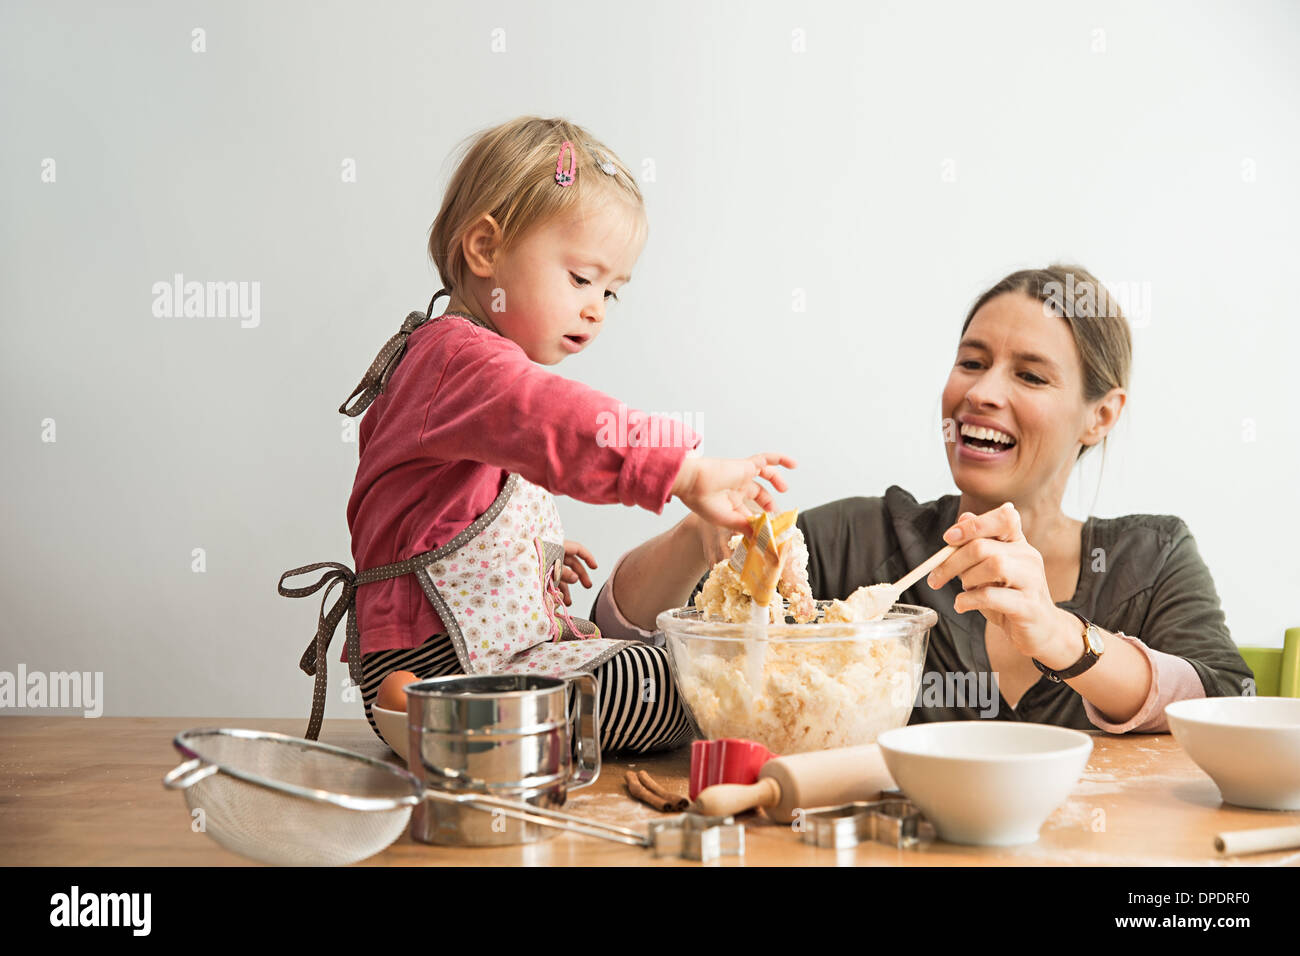 Mother and child mixing batter Stock Photo